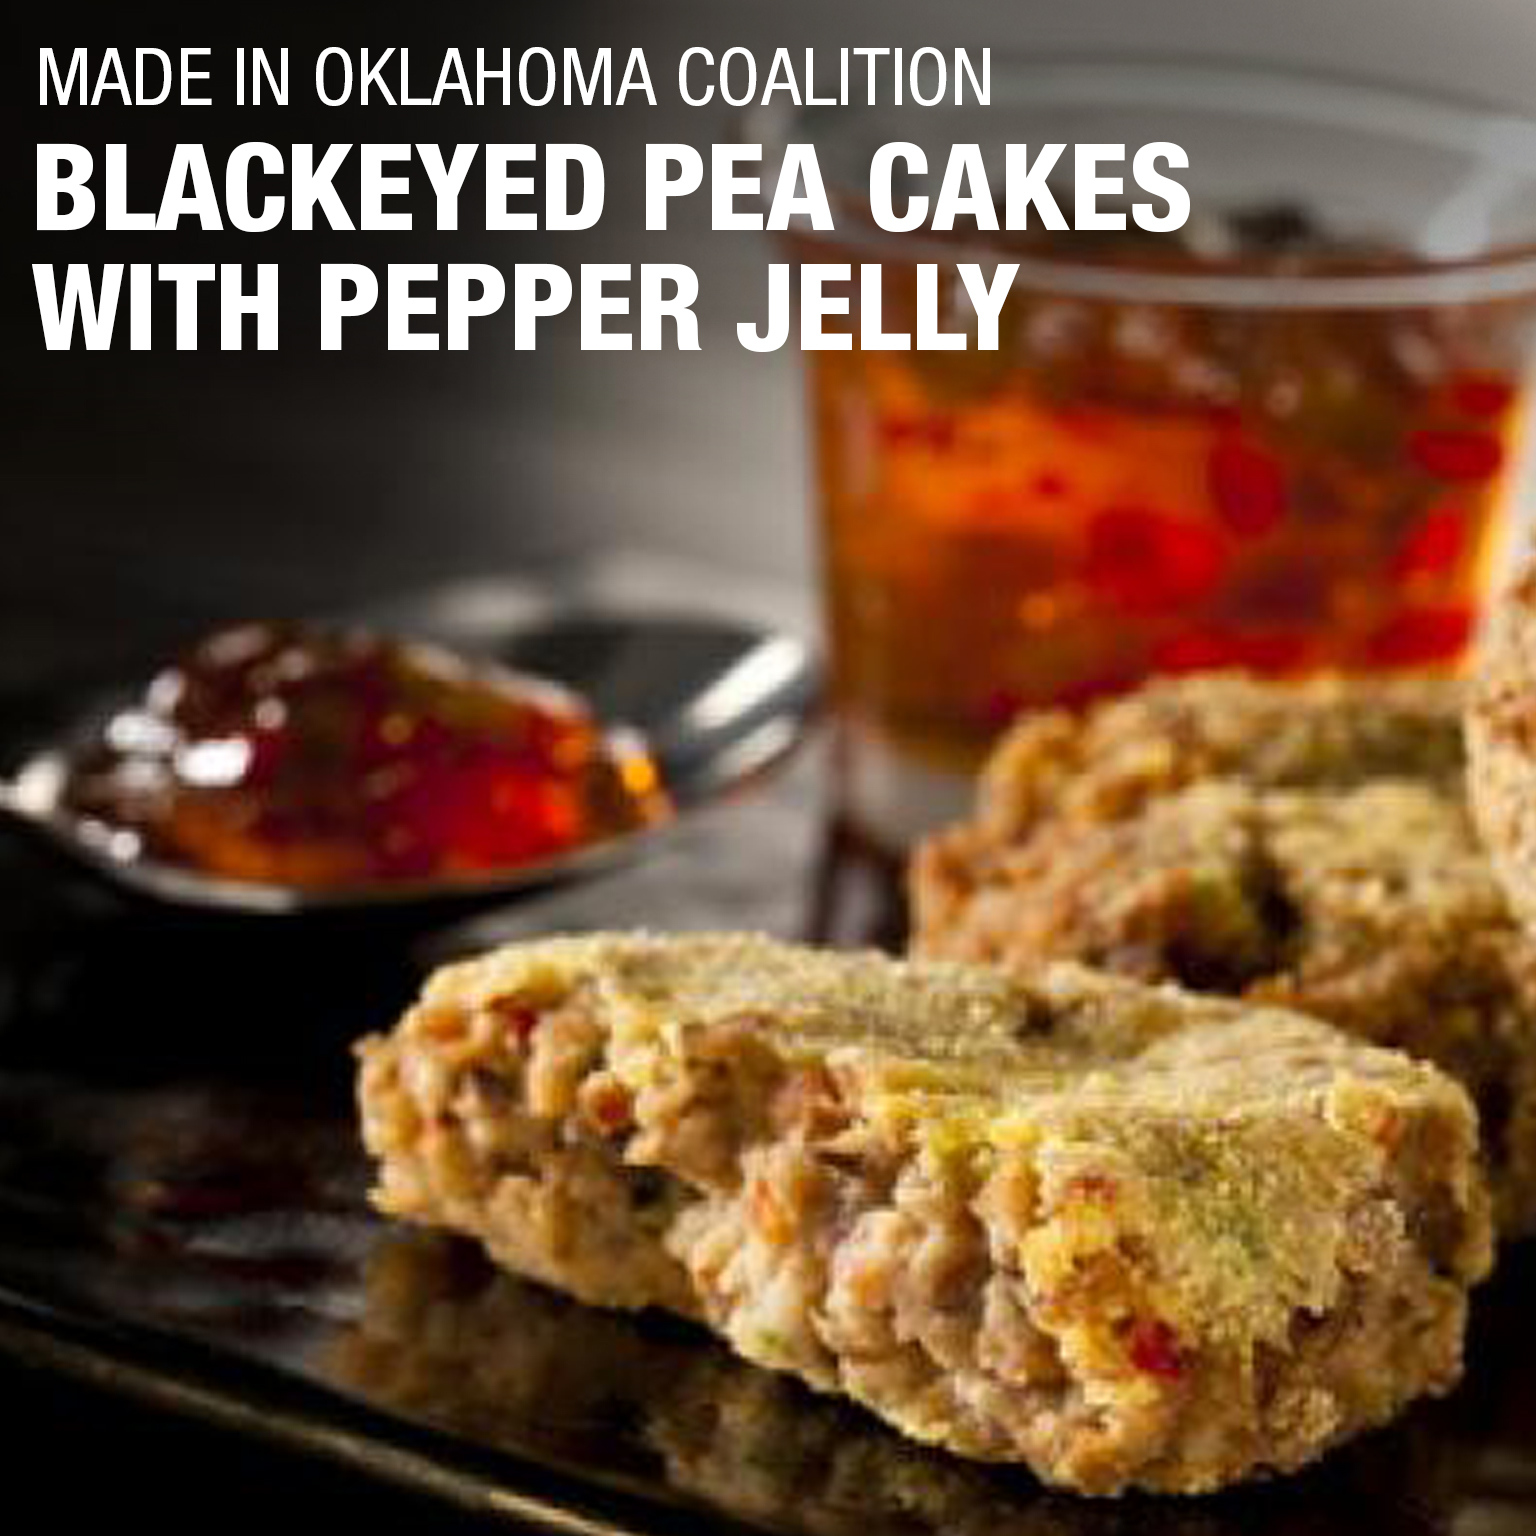 http://miocoalition.com/blackeyed-pea-cakes-pepper-jelly